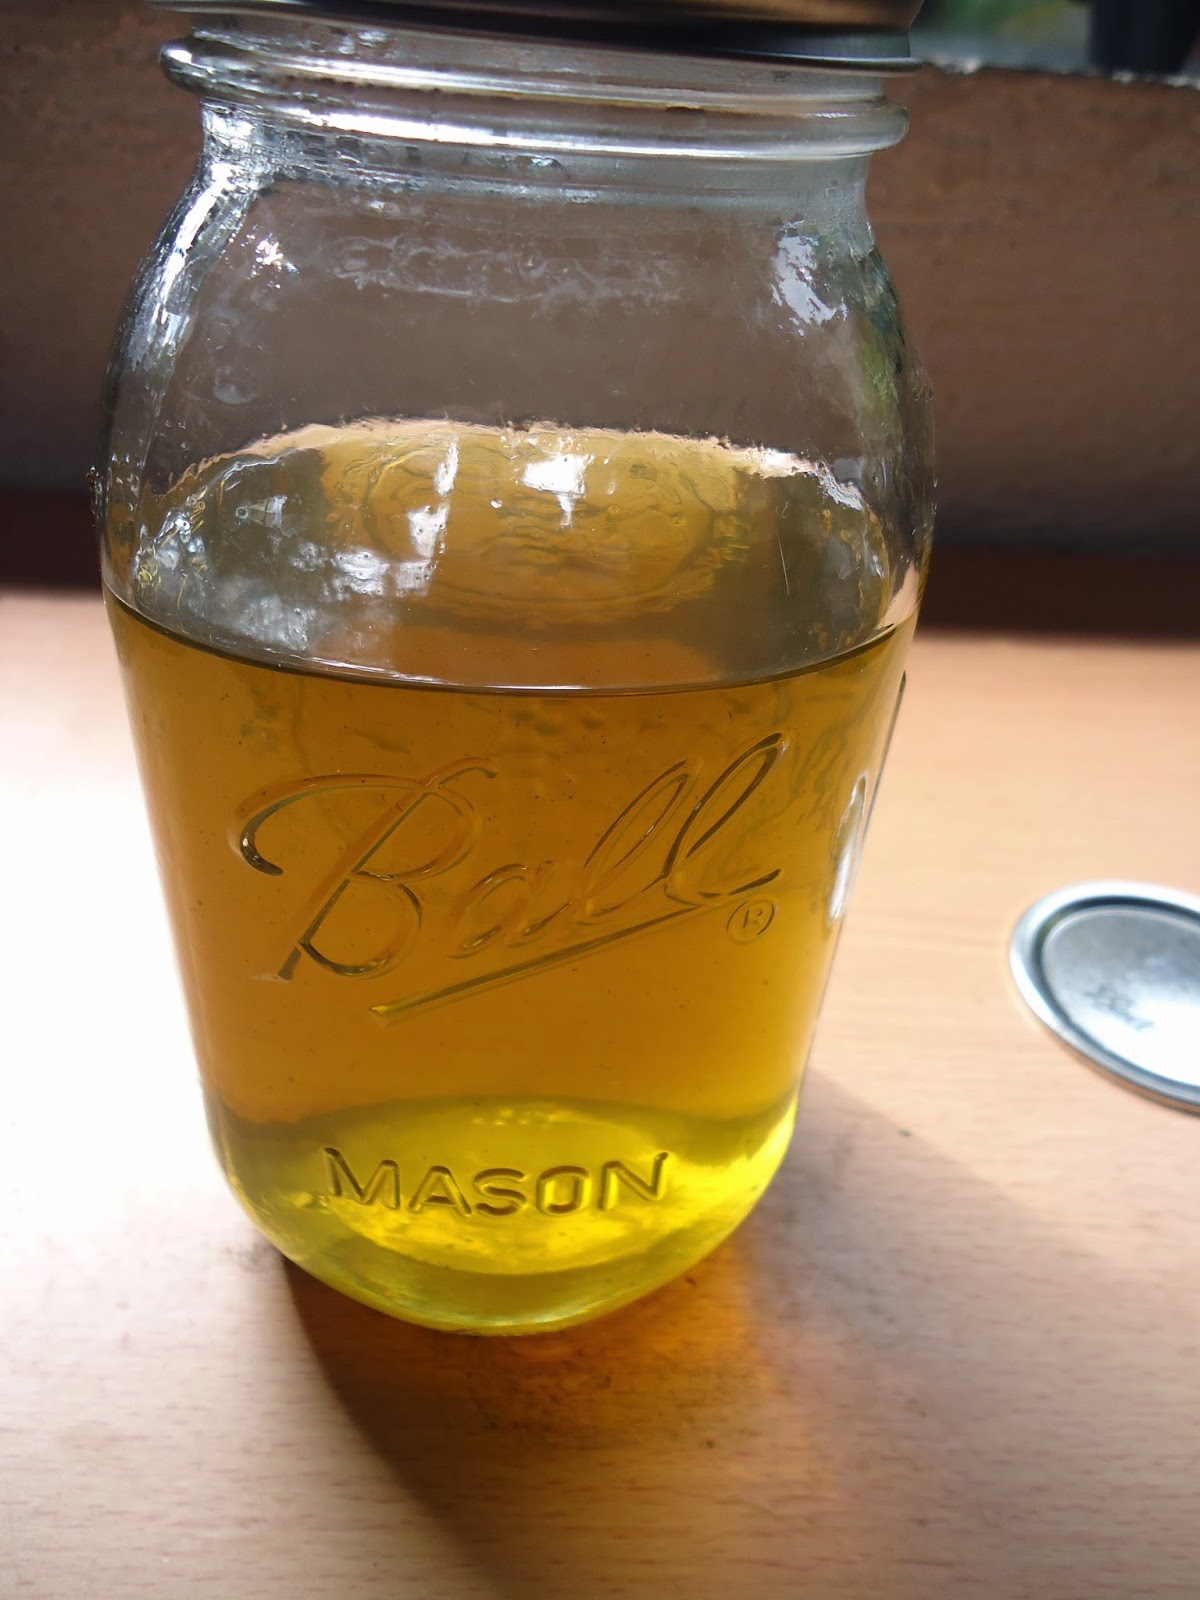 Vitex negundo or lagundi decoction